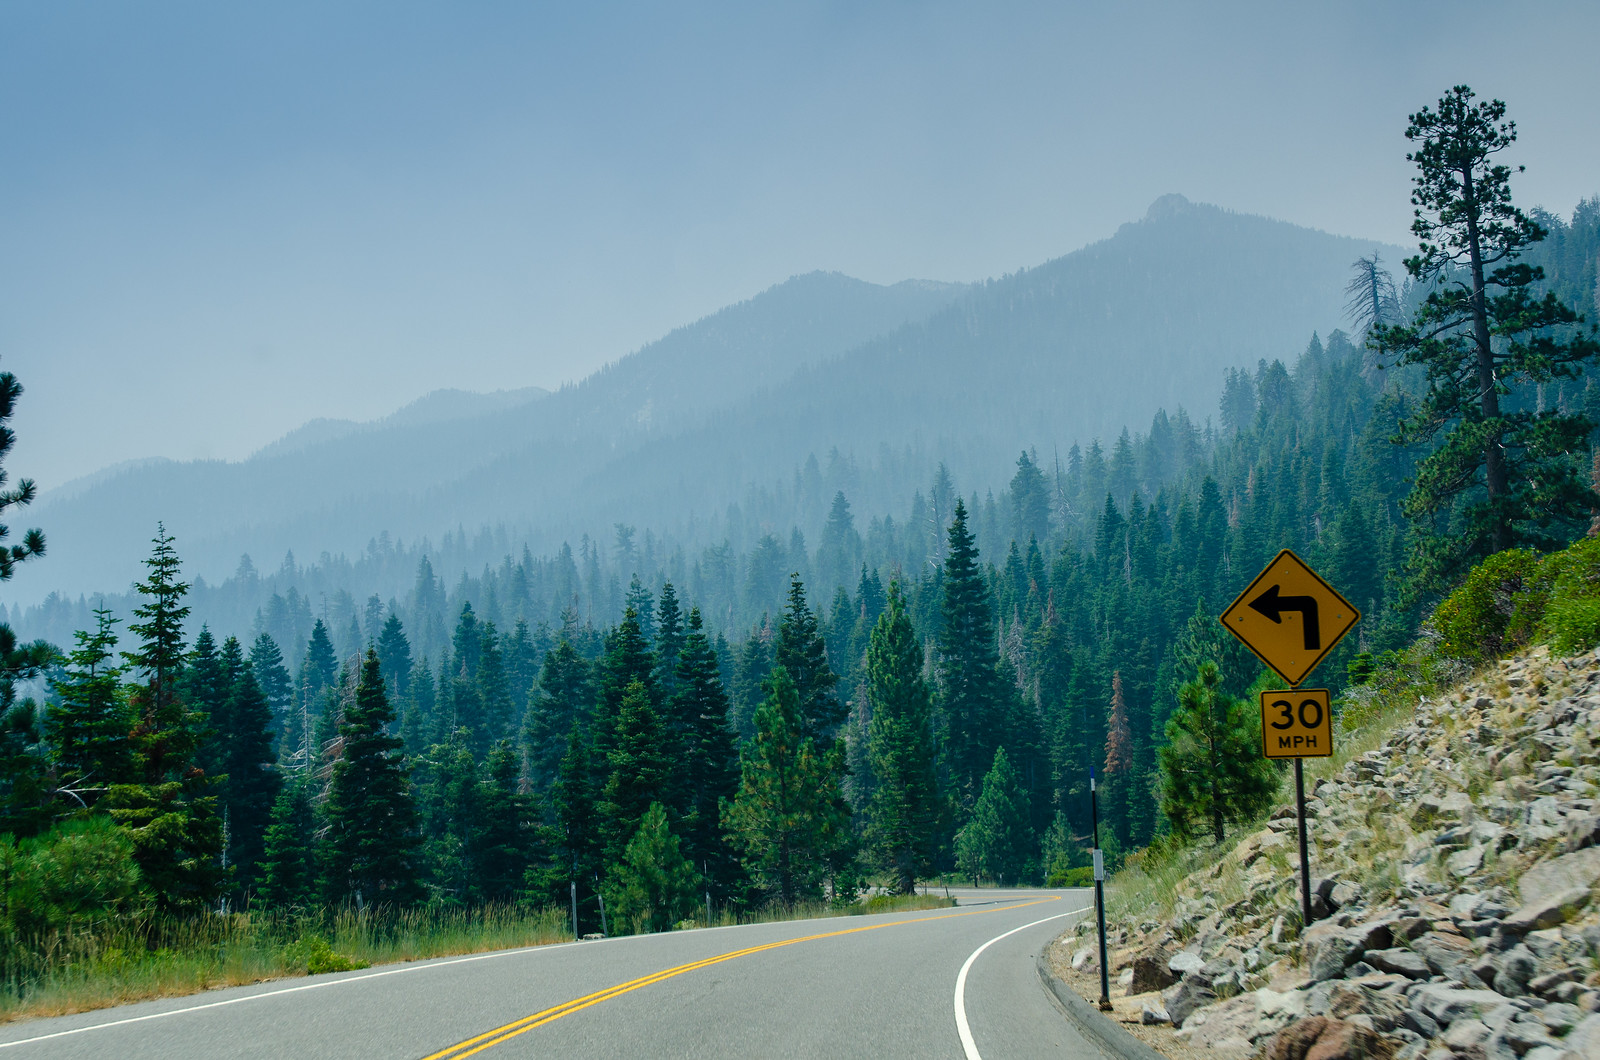 Sur la route entre Lake Tahoe et Mammoth Lakes